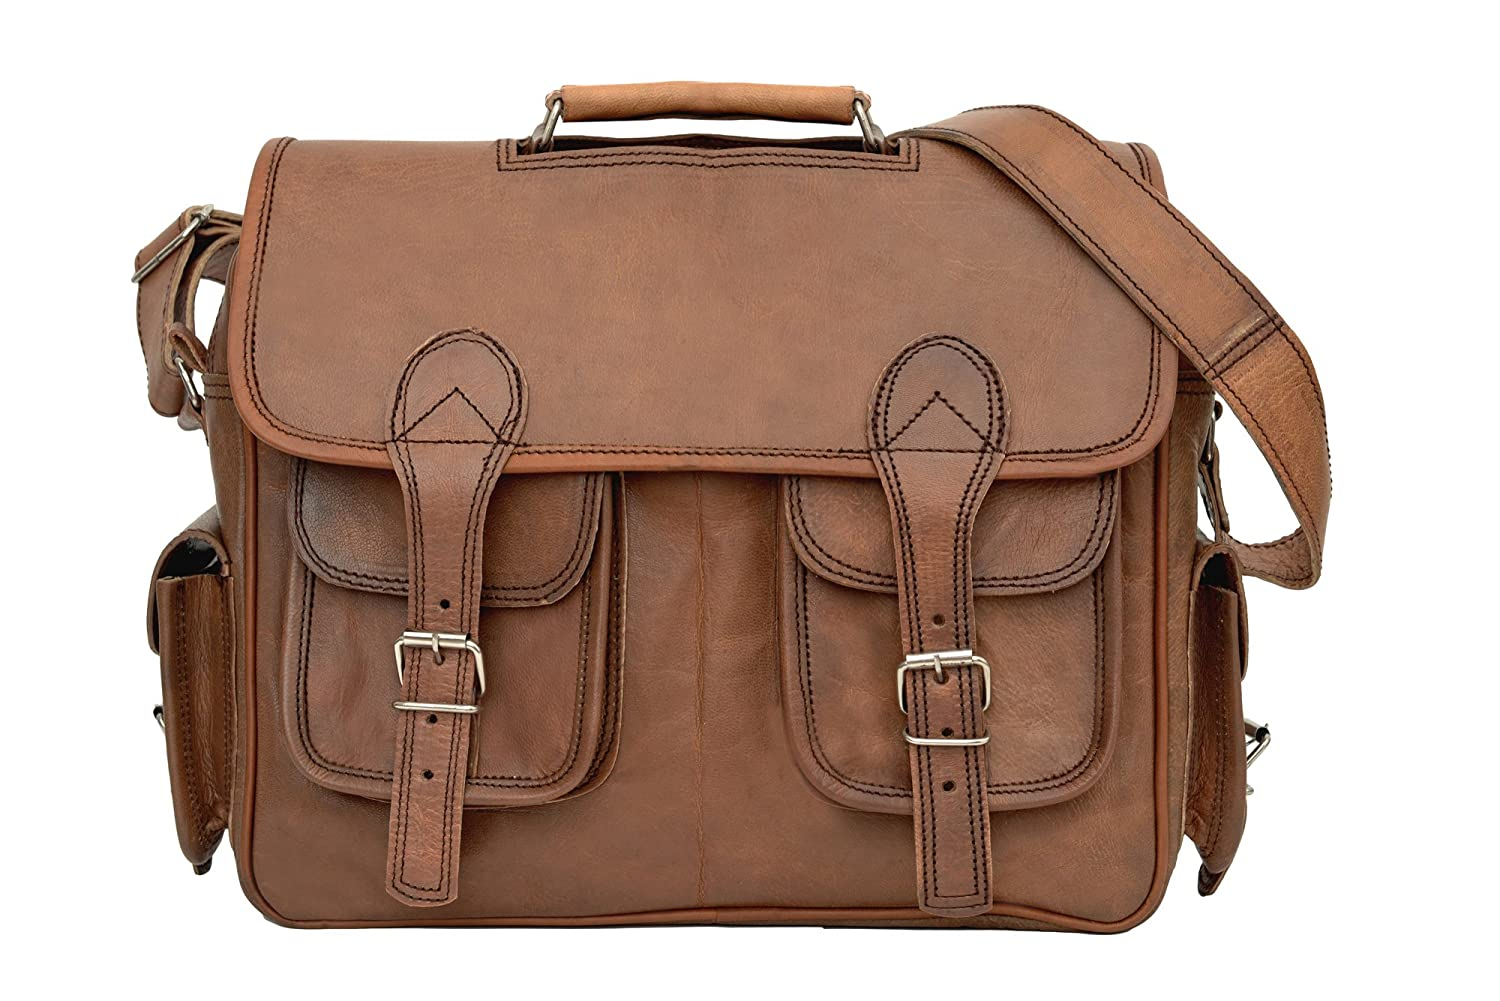 0937ee3a11c9 hot sale 81stgeneration Men s Women s Classic Large Leather Courier Style  Crossover Shoulder Bag